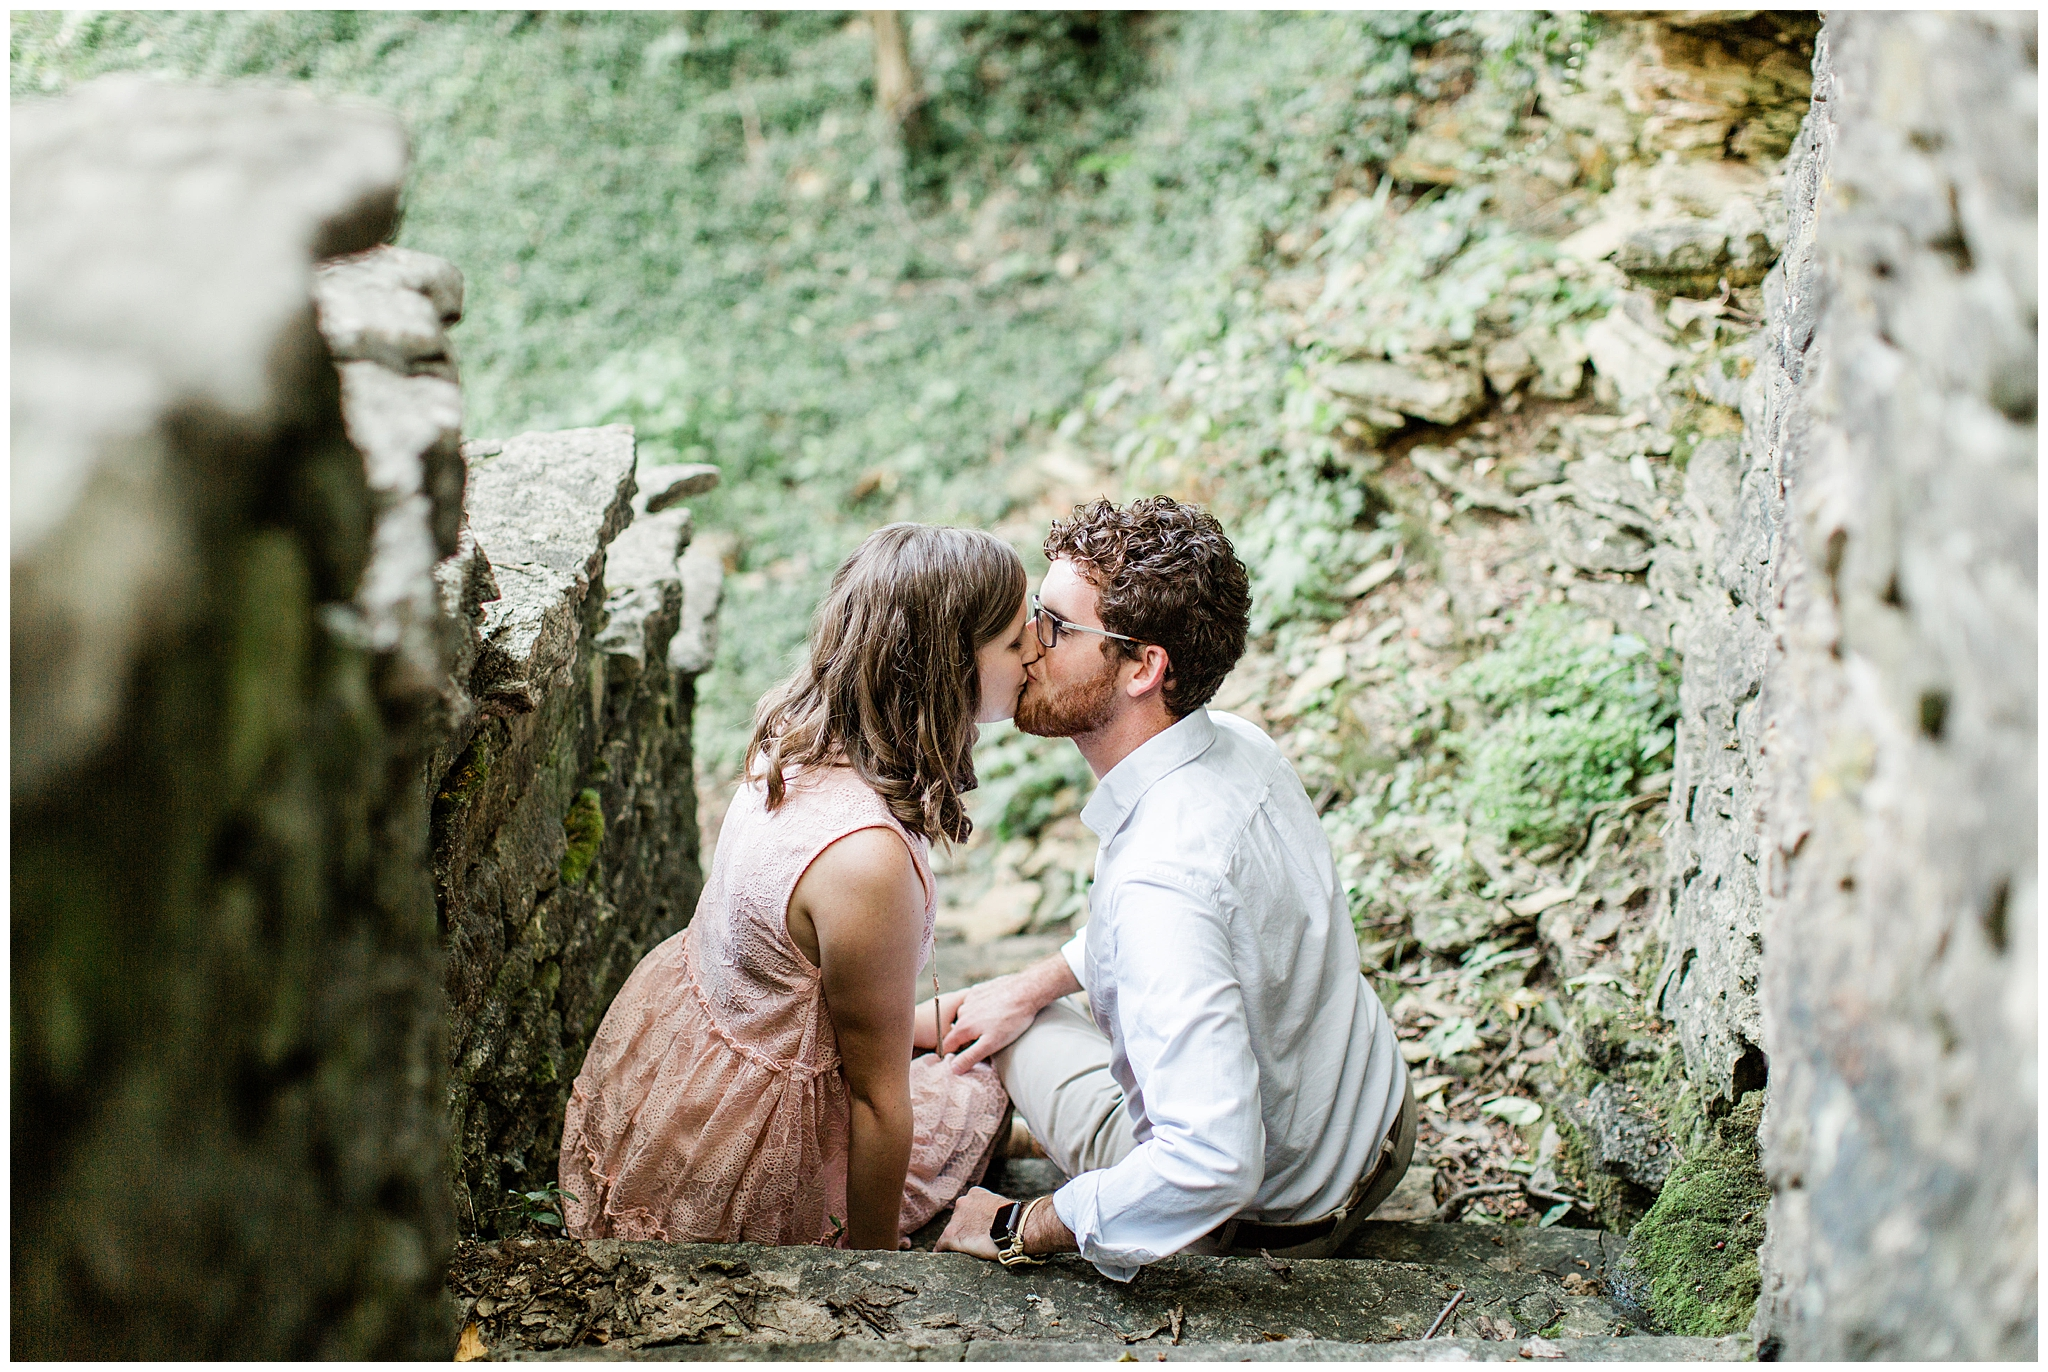 These two little love birds had a beautiful end of summer engagement session in what felt like a hidden secret in the heart of Kentucky at the Kentucky Horse Park. They have not yet gotten married so I am so excited for their wedding later this summer. I hope you all enjoy the beautiful stone, greenery and golden light (which is always my favorite).